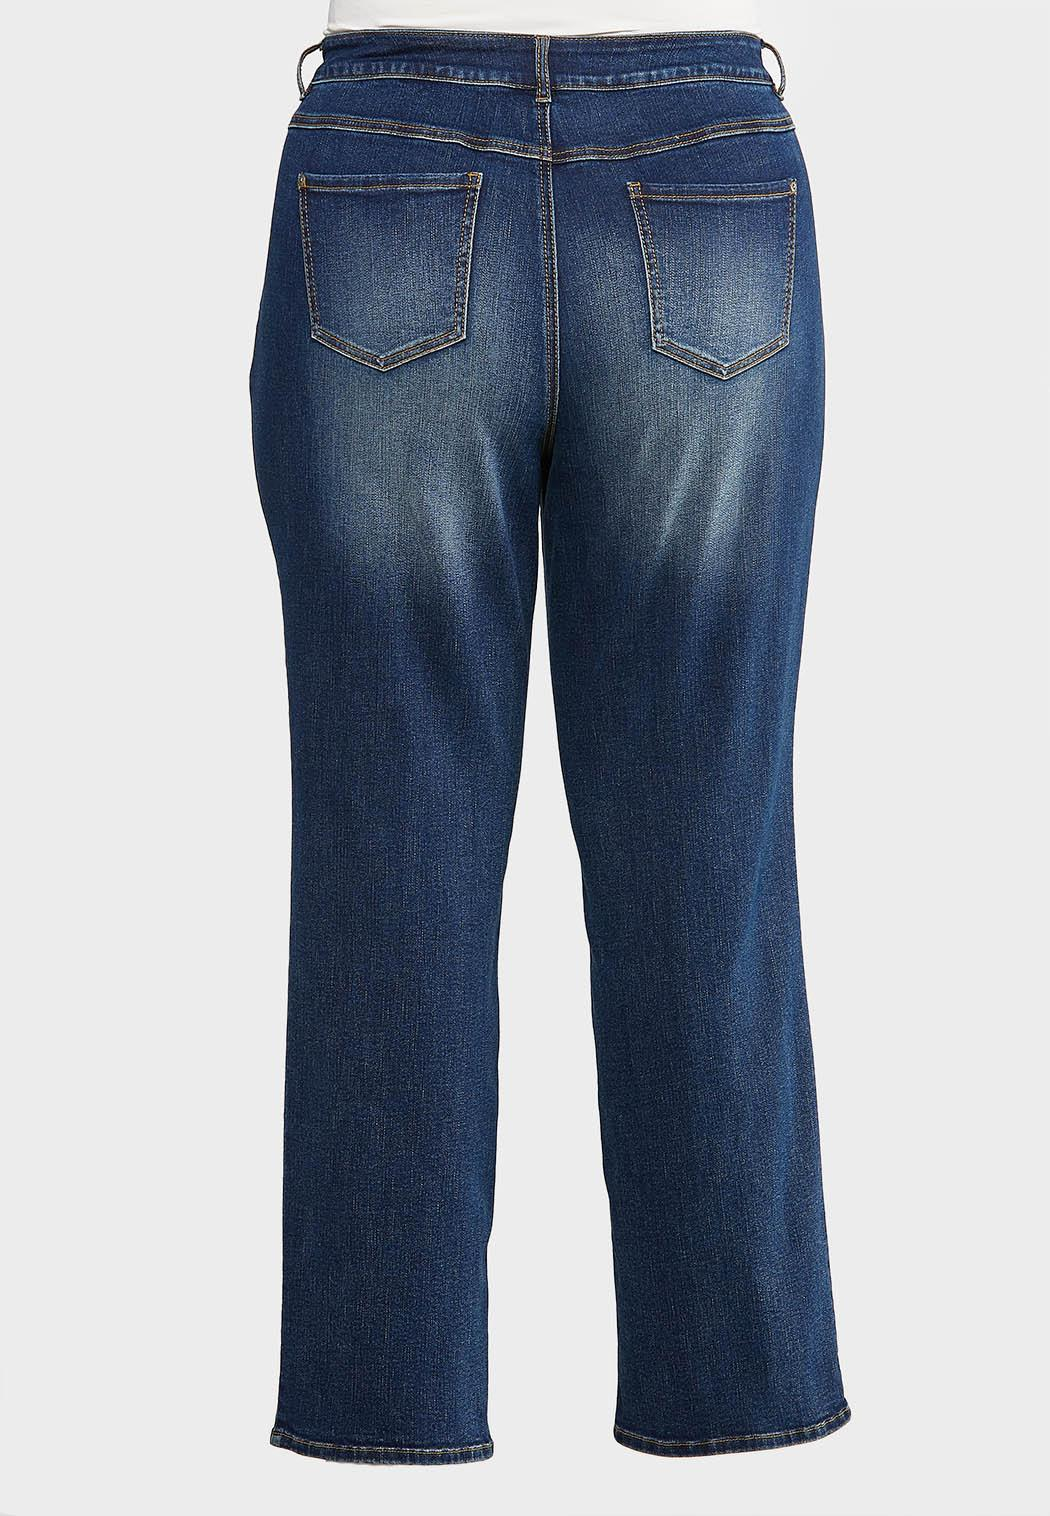 Plus Size Straight Leg Medium Wash Jeans (Item #43969399)